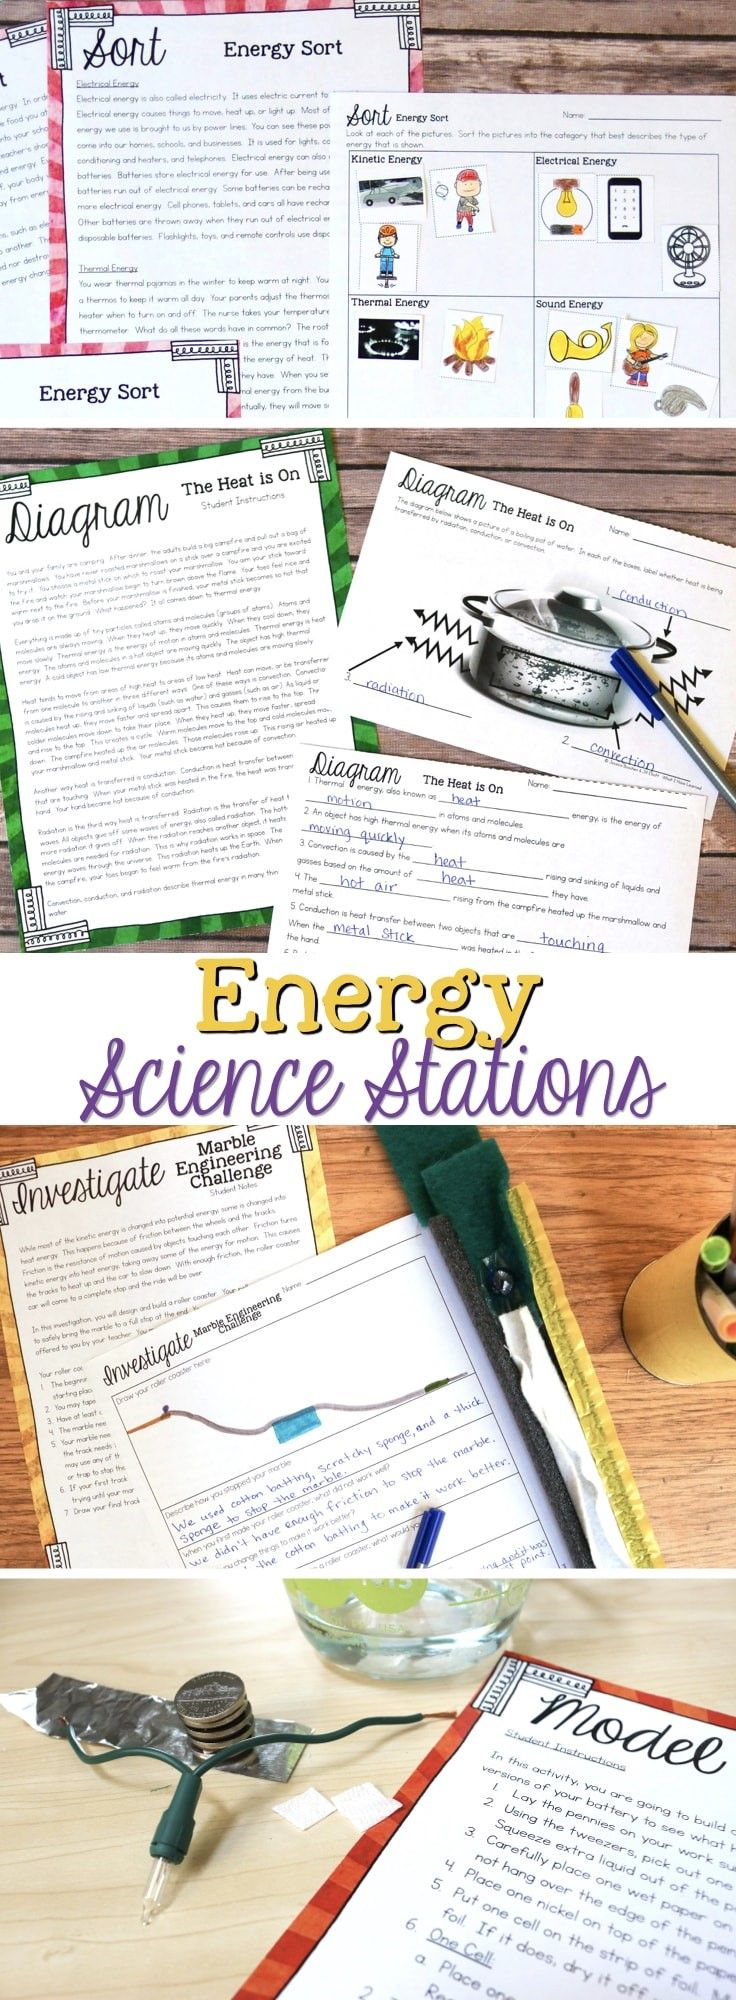 Energy Science Stations that help students gain a robust understanding of energy, energy transfer, and conservation of energy. Includes a variety of energy science activities for fourth grade science stations. Electrical energy, thermal energy, potential energy. #fourthgradescience